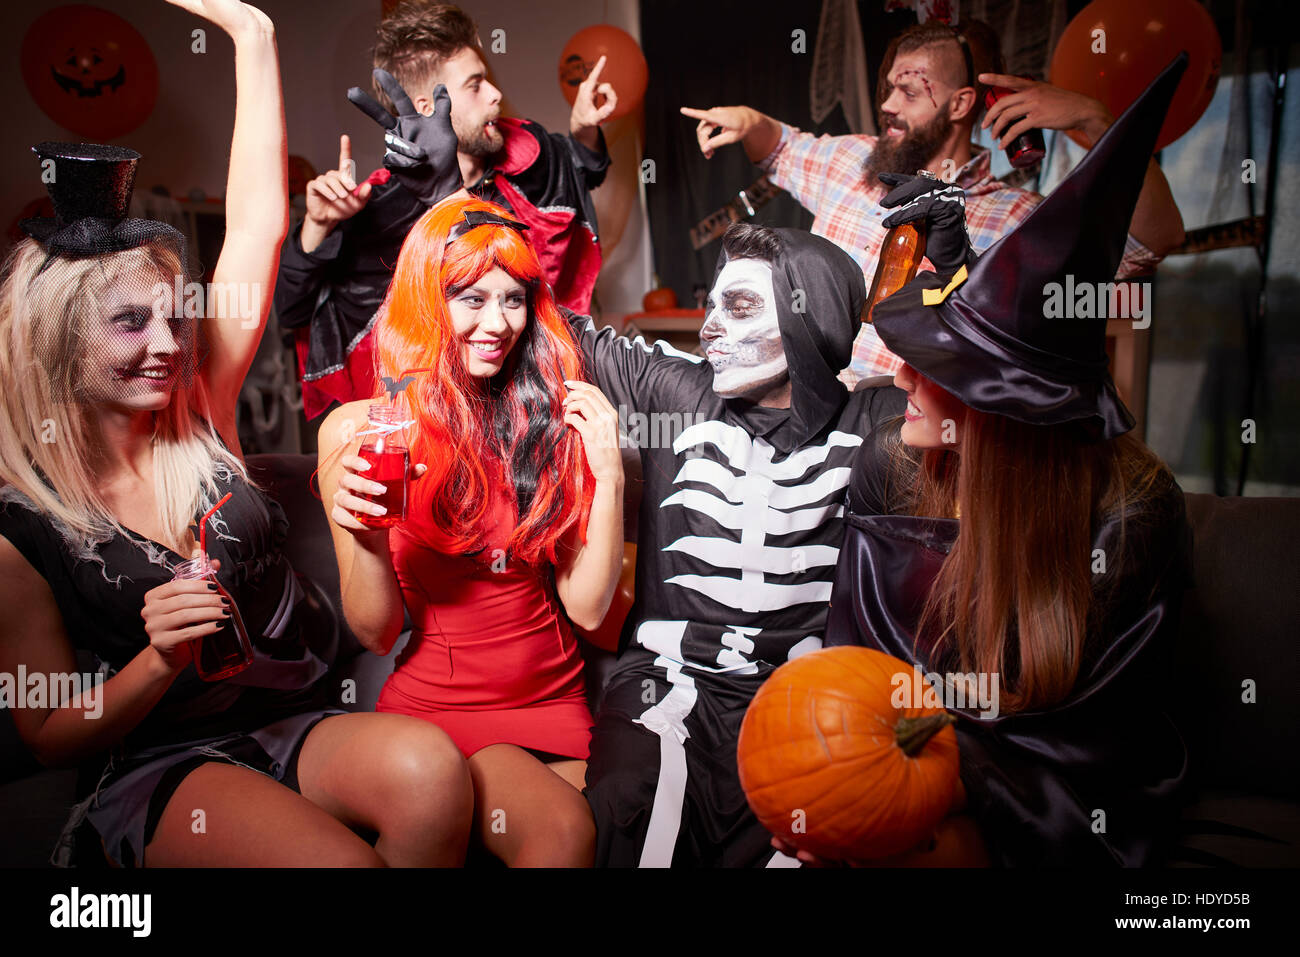 In good moods at halloween party - Stock Image